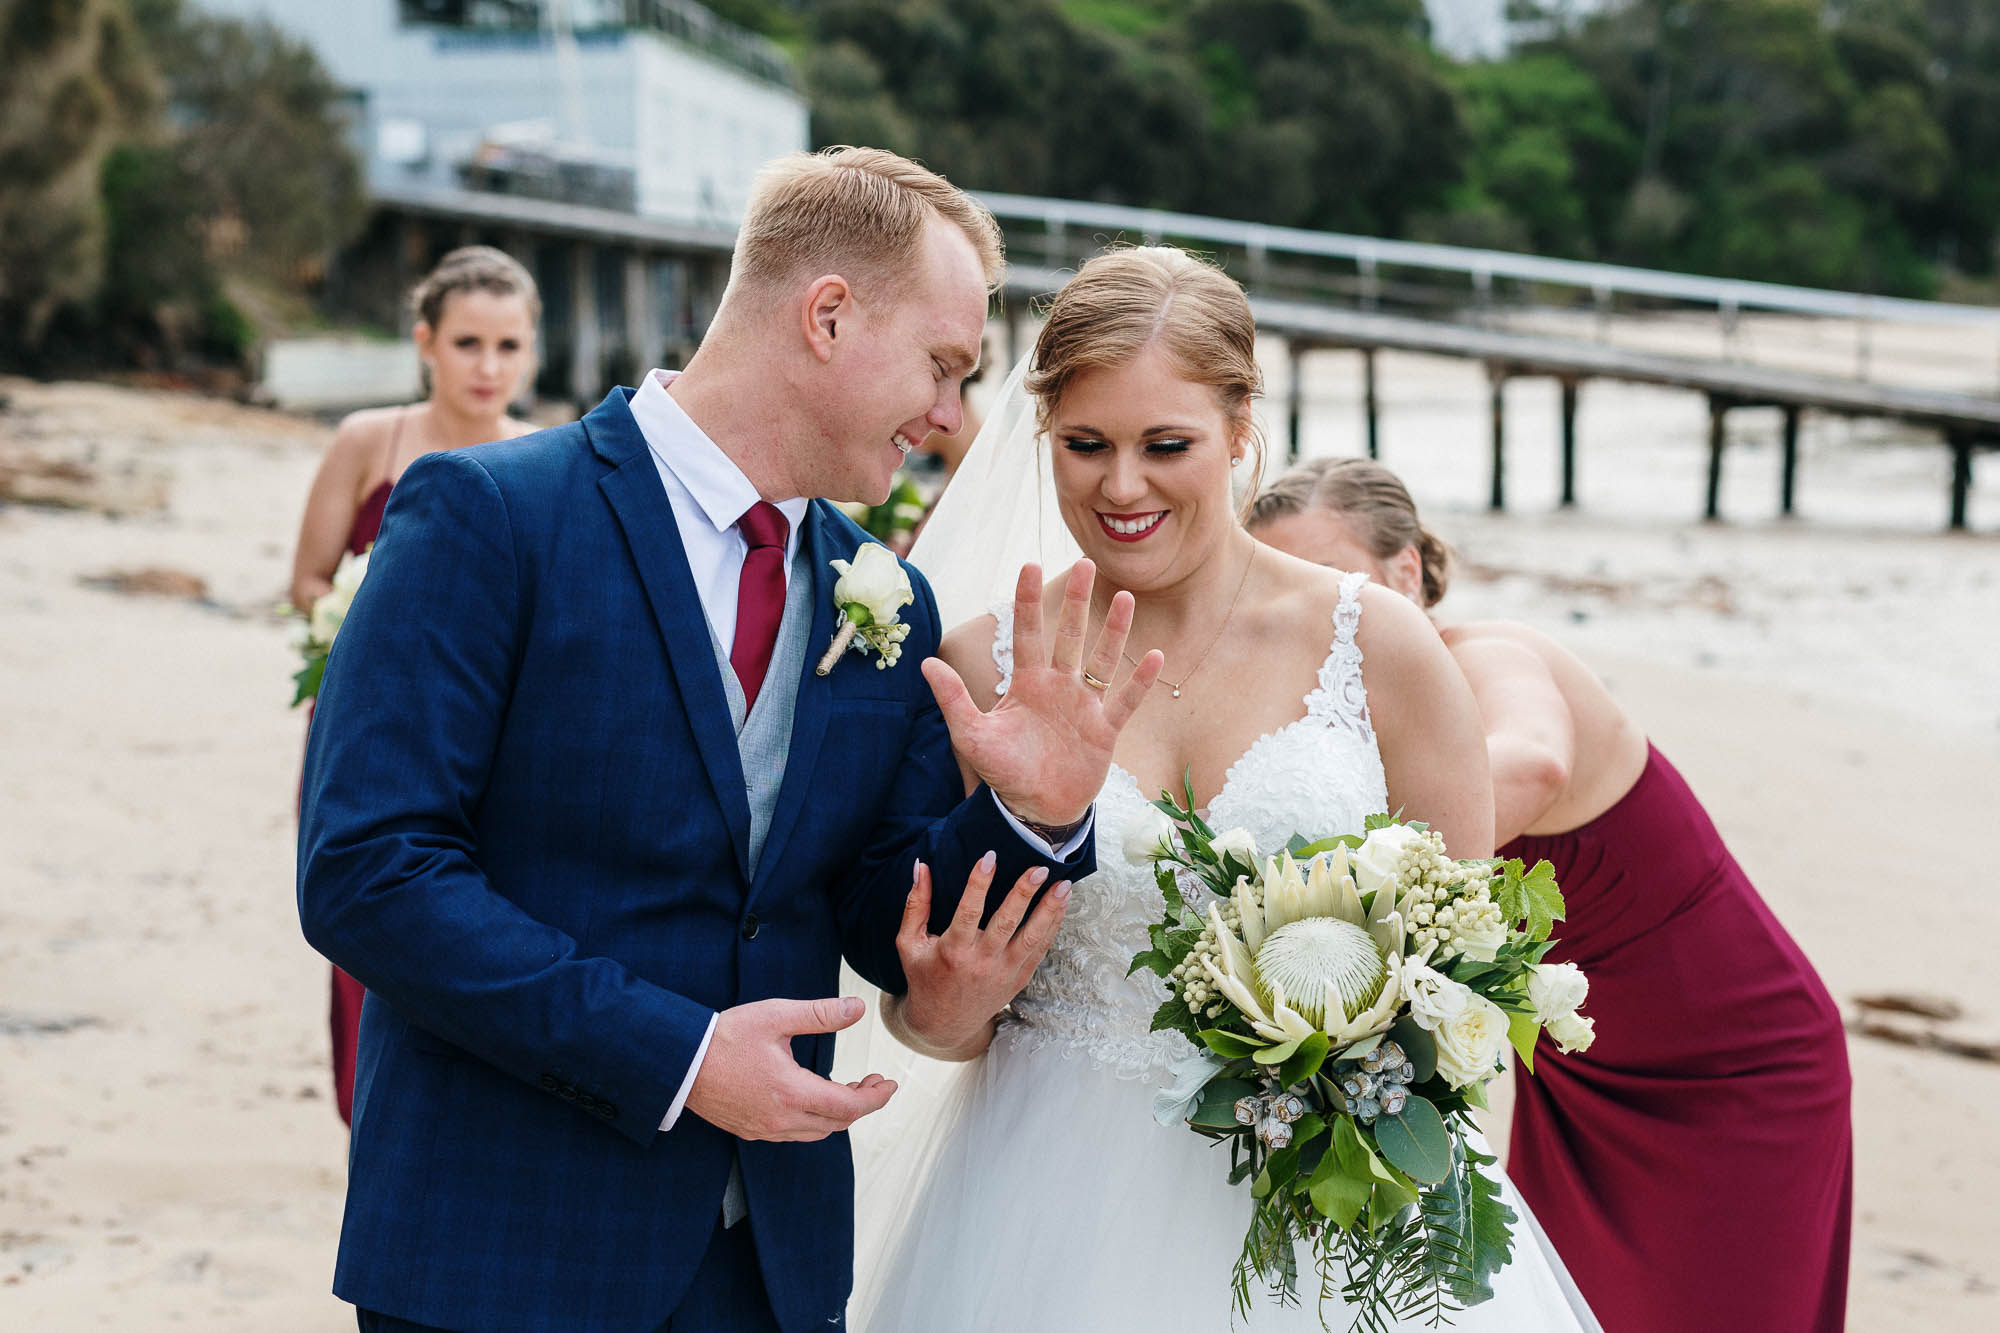 lachlan-scallion-alana-andrew-melbourne-mornington-peninsula-merricksgeneralwinestore-relaxed-candid-wedding-photography-341.jpg